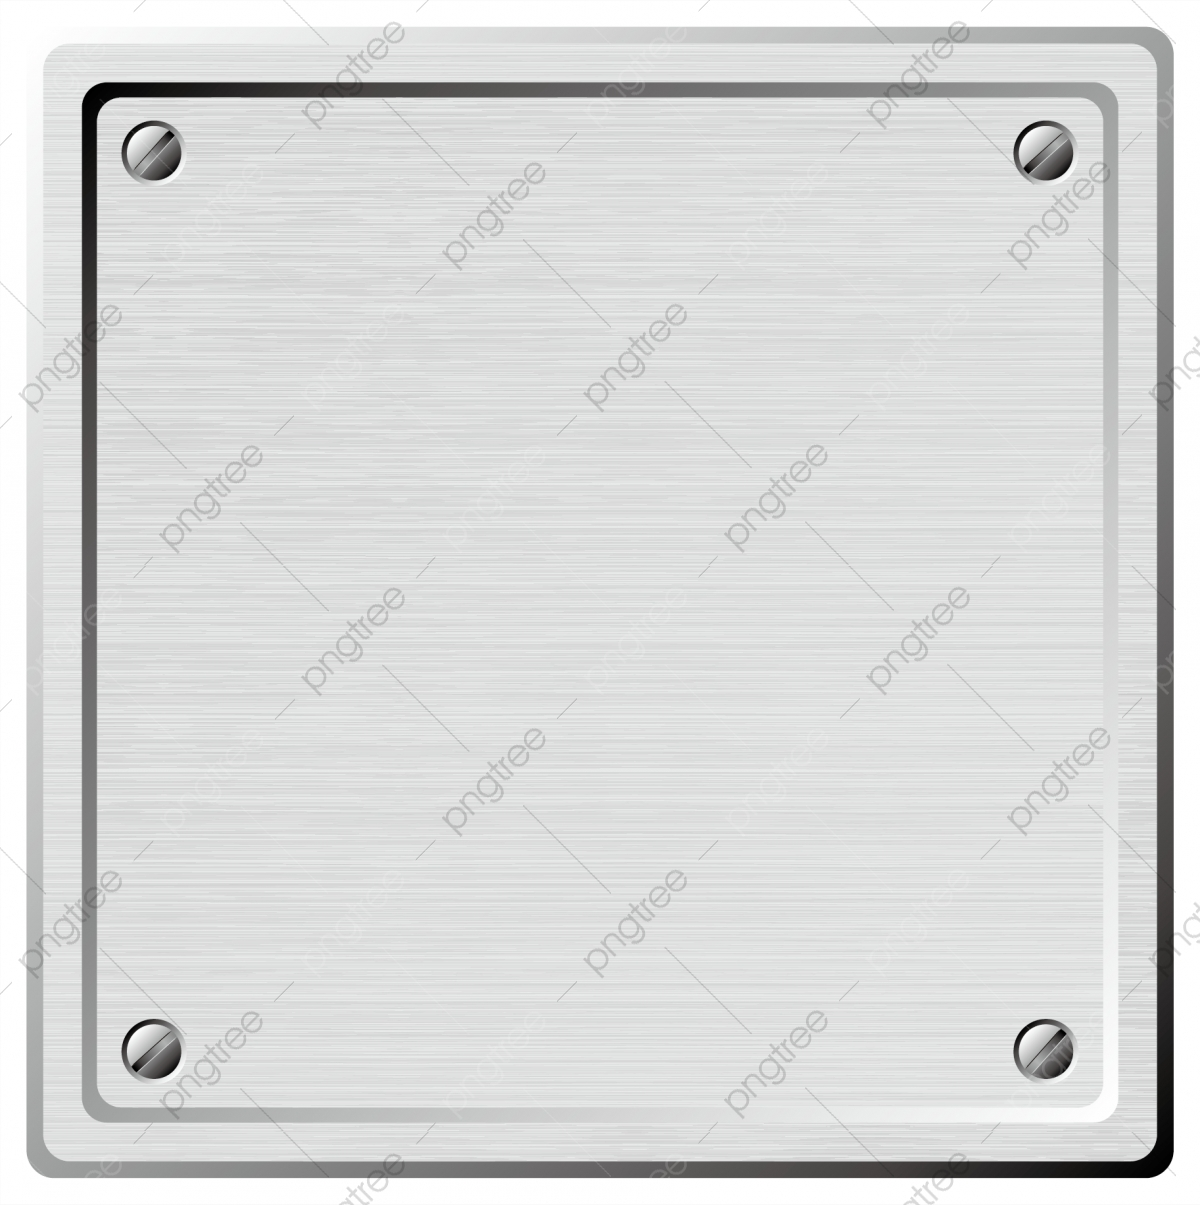 Placa de metal png.